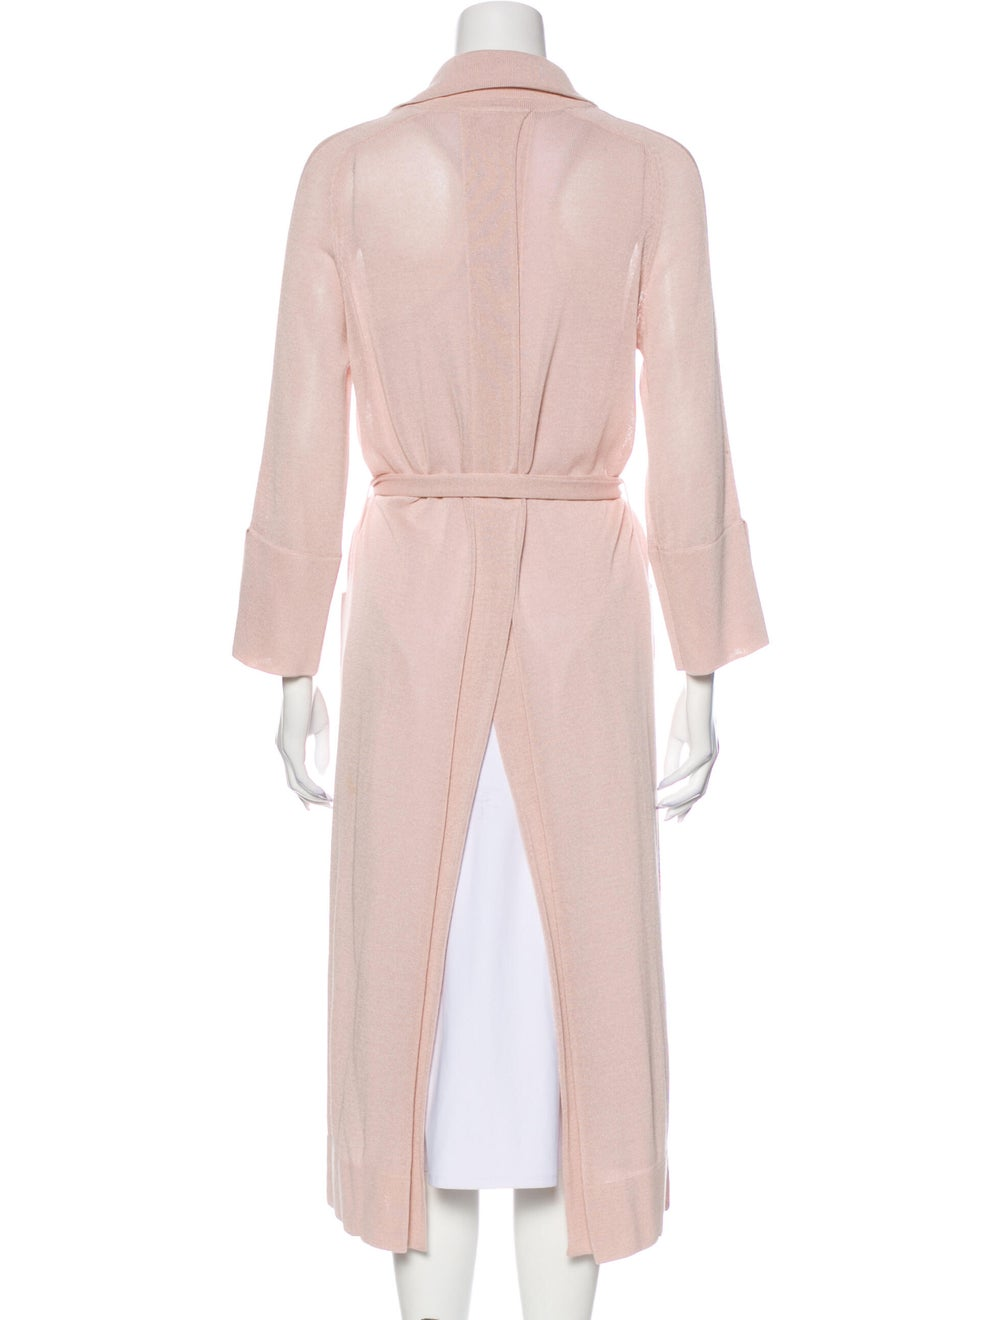 Soyer Trench Coat Pink - image 3